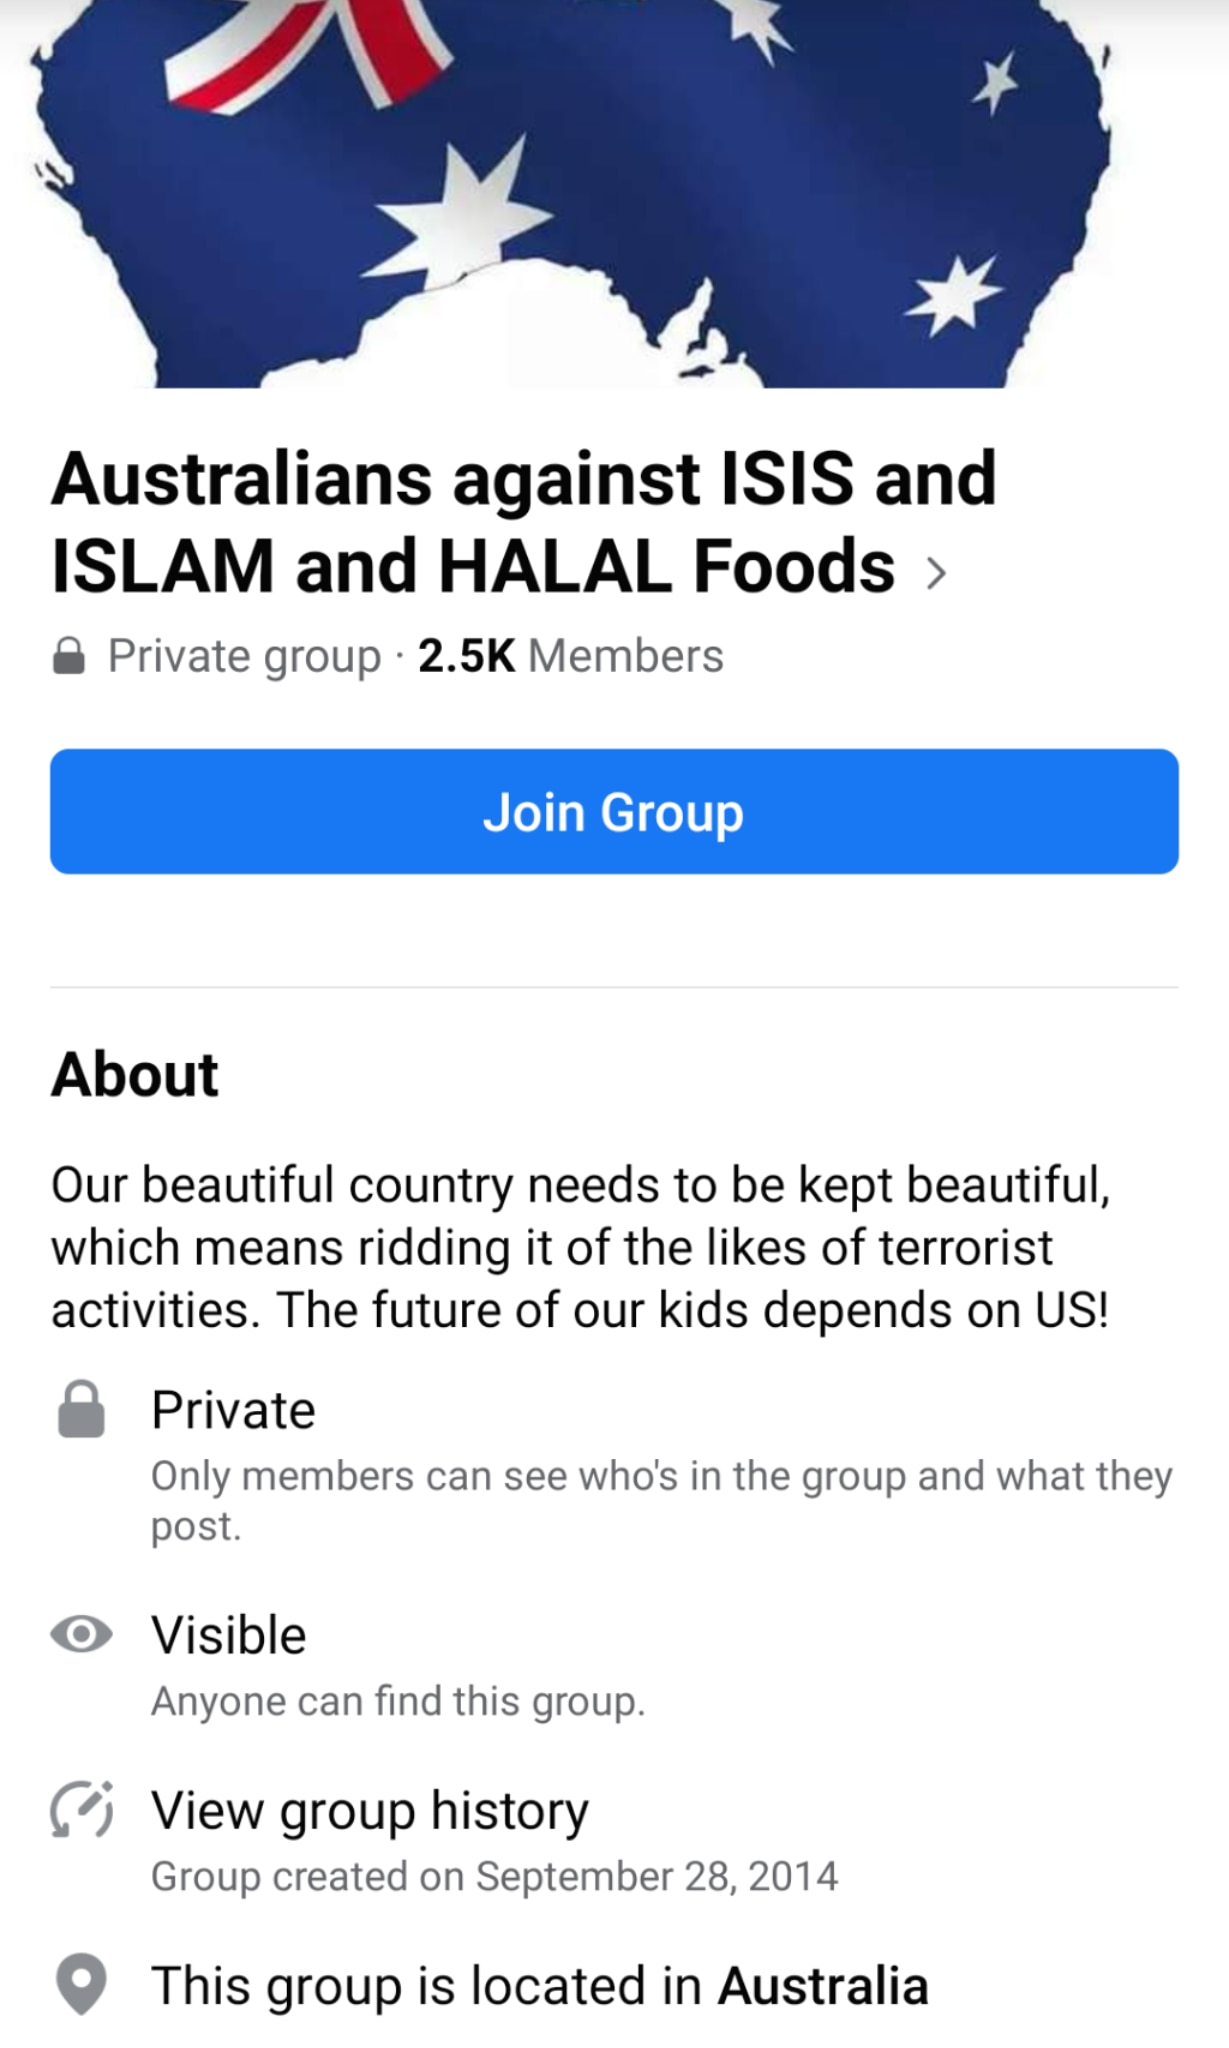 An example of an anti-Islam Facebook group's questions before submission to the group.